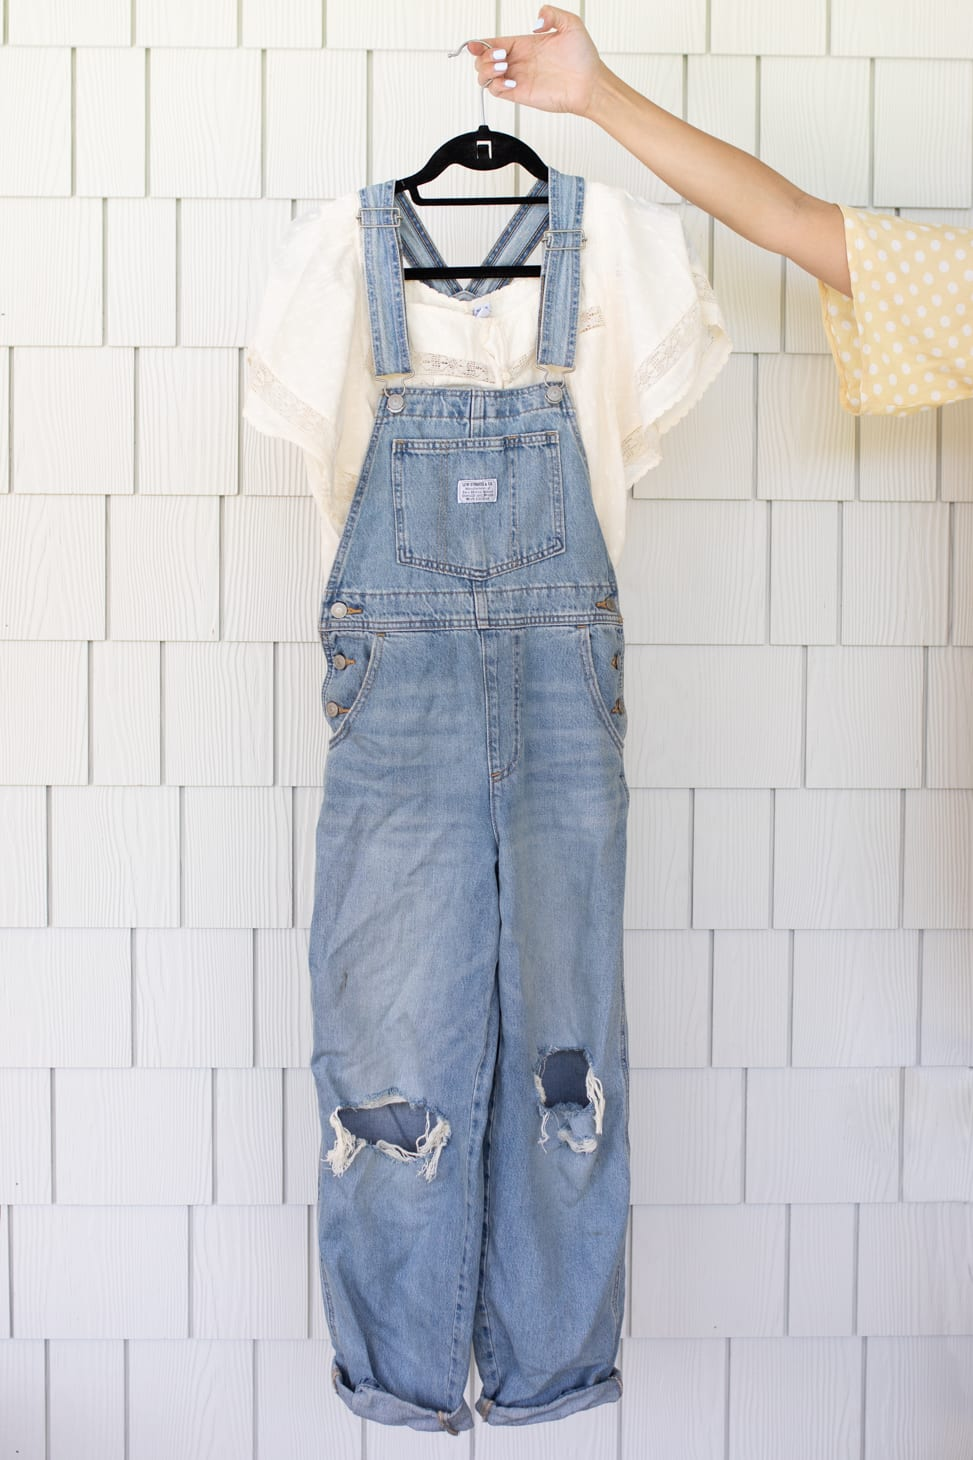 Light denim overalls with holes in knee area paired with a short sleeved white peasant shirt, an example of Jillian Harris' Favourite Farm-Inspired Looks.